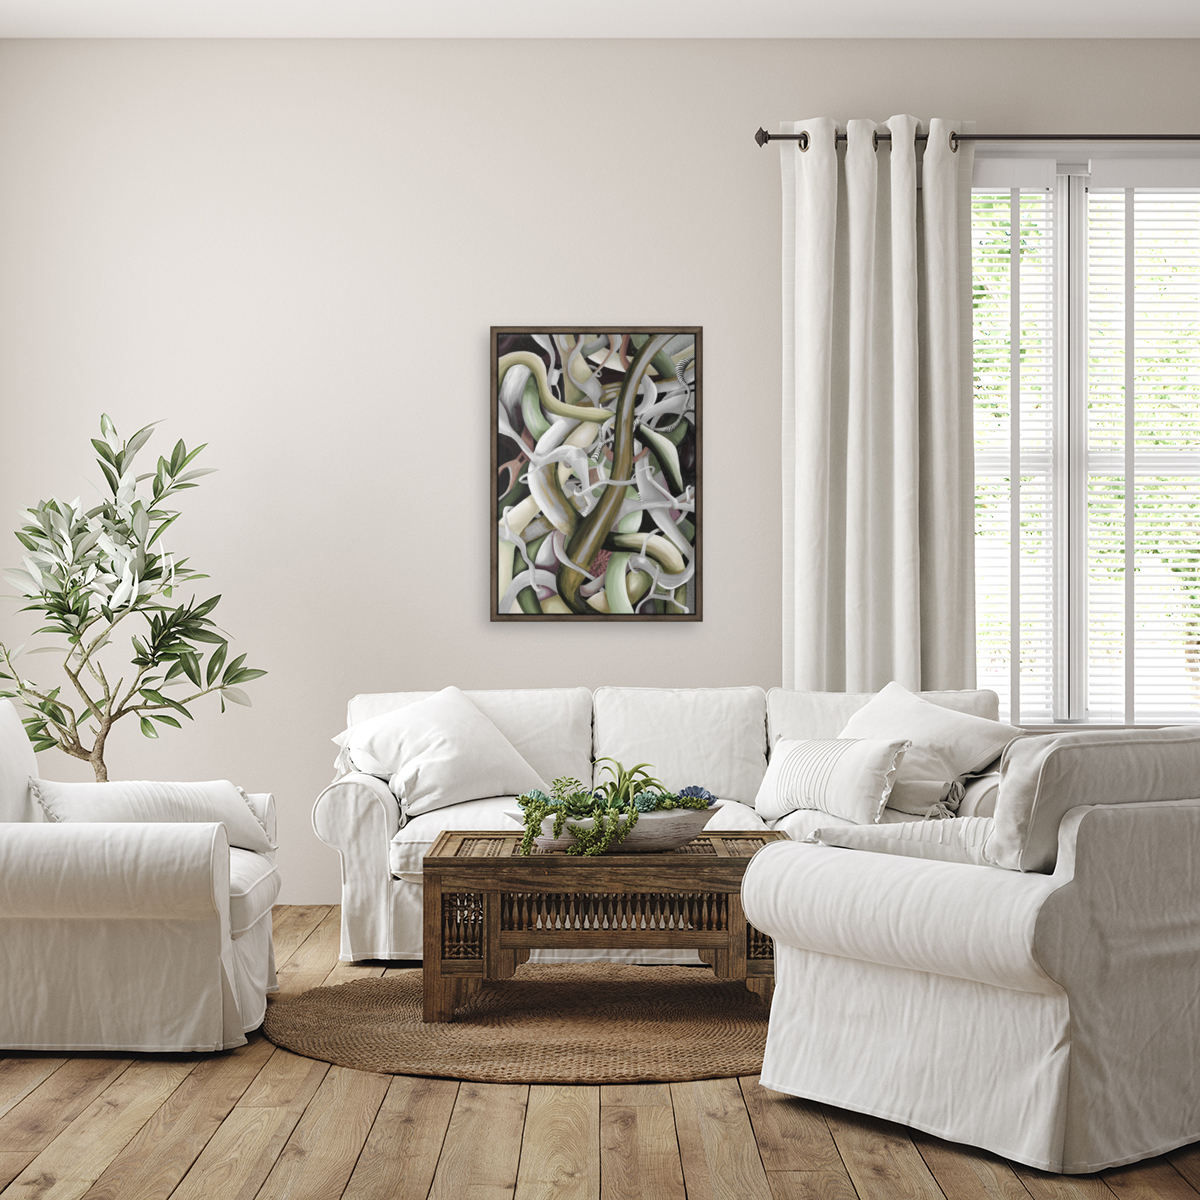 Interlacing Dramatic Contemporary Abstract with Floating Frame